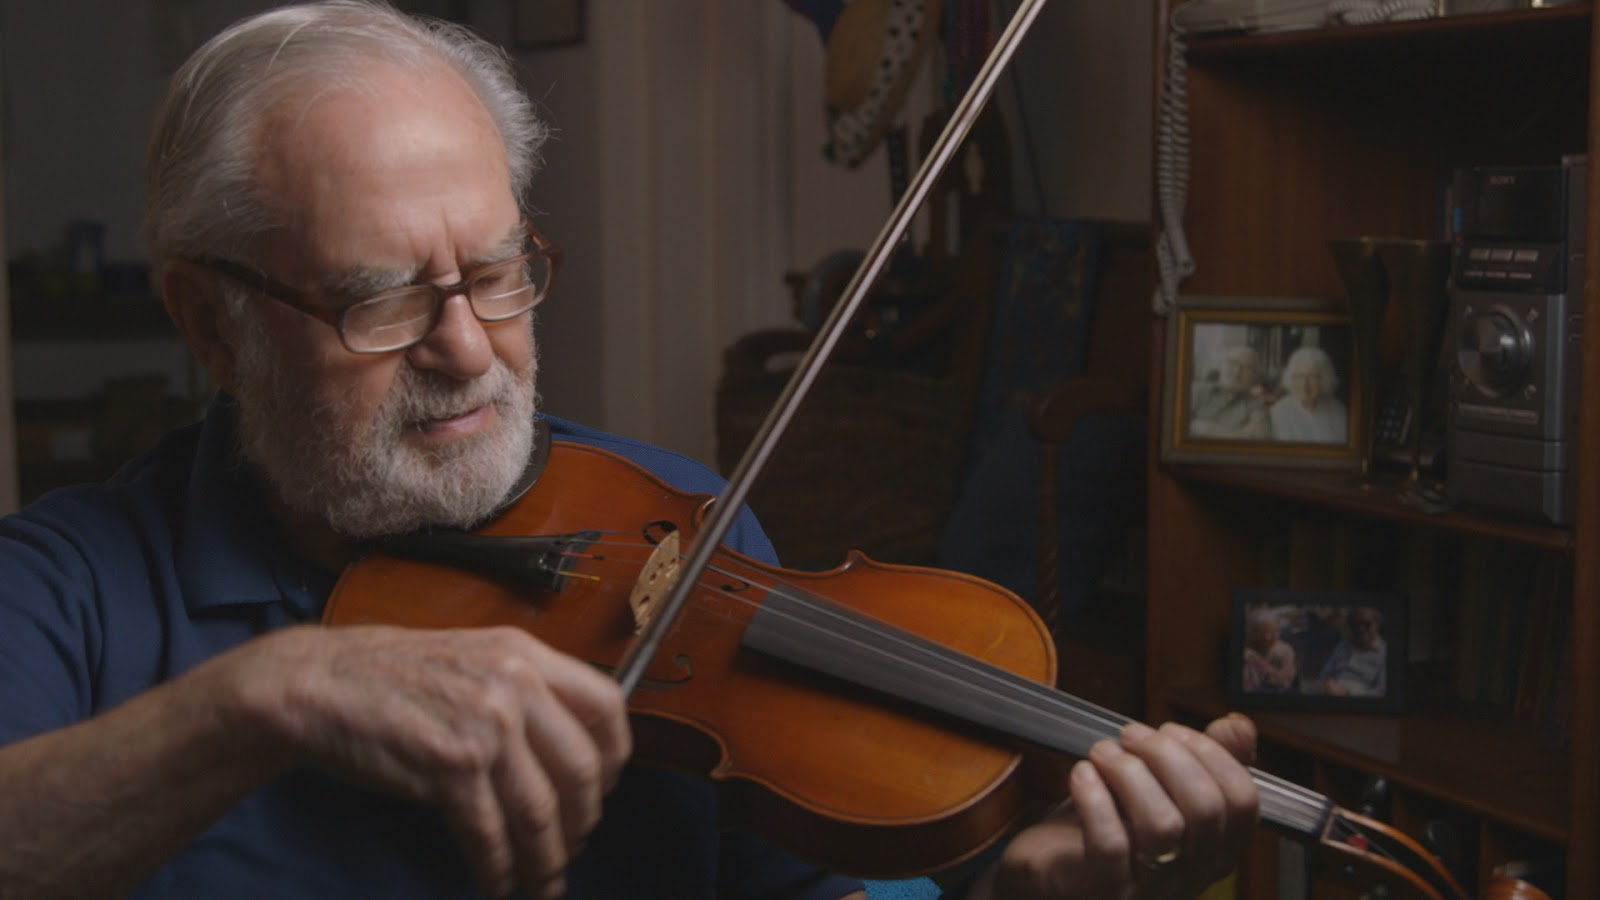 Um jeito manso o violino de joe the retired architect was born in warsaw in 1923 and grew up playing the violin encouraged by his mother i delighted in learning about fandeluxe